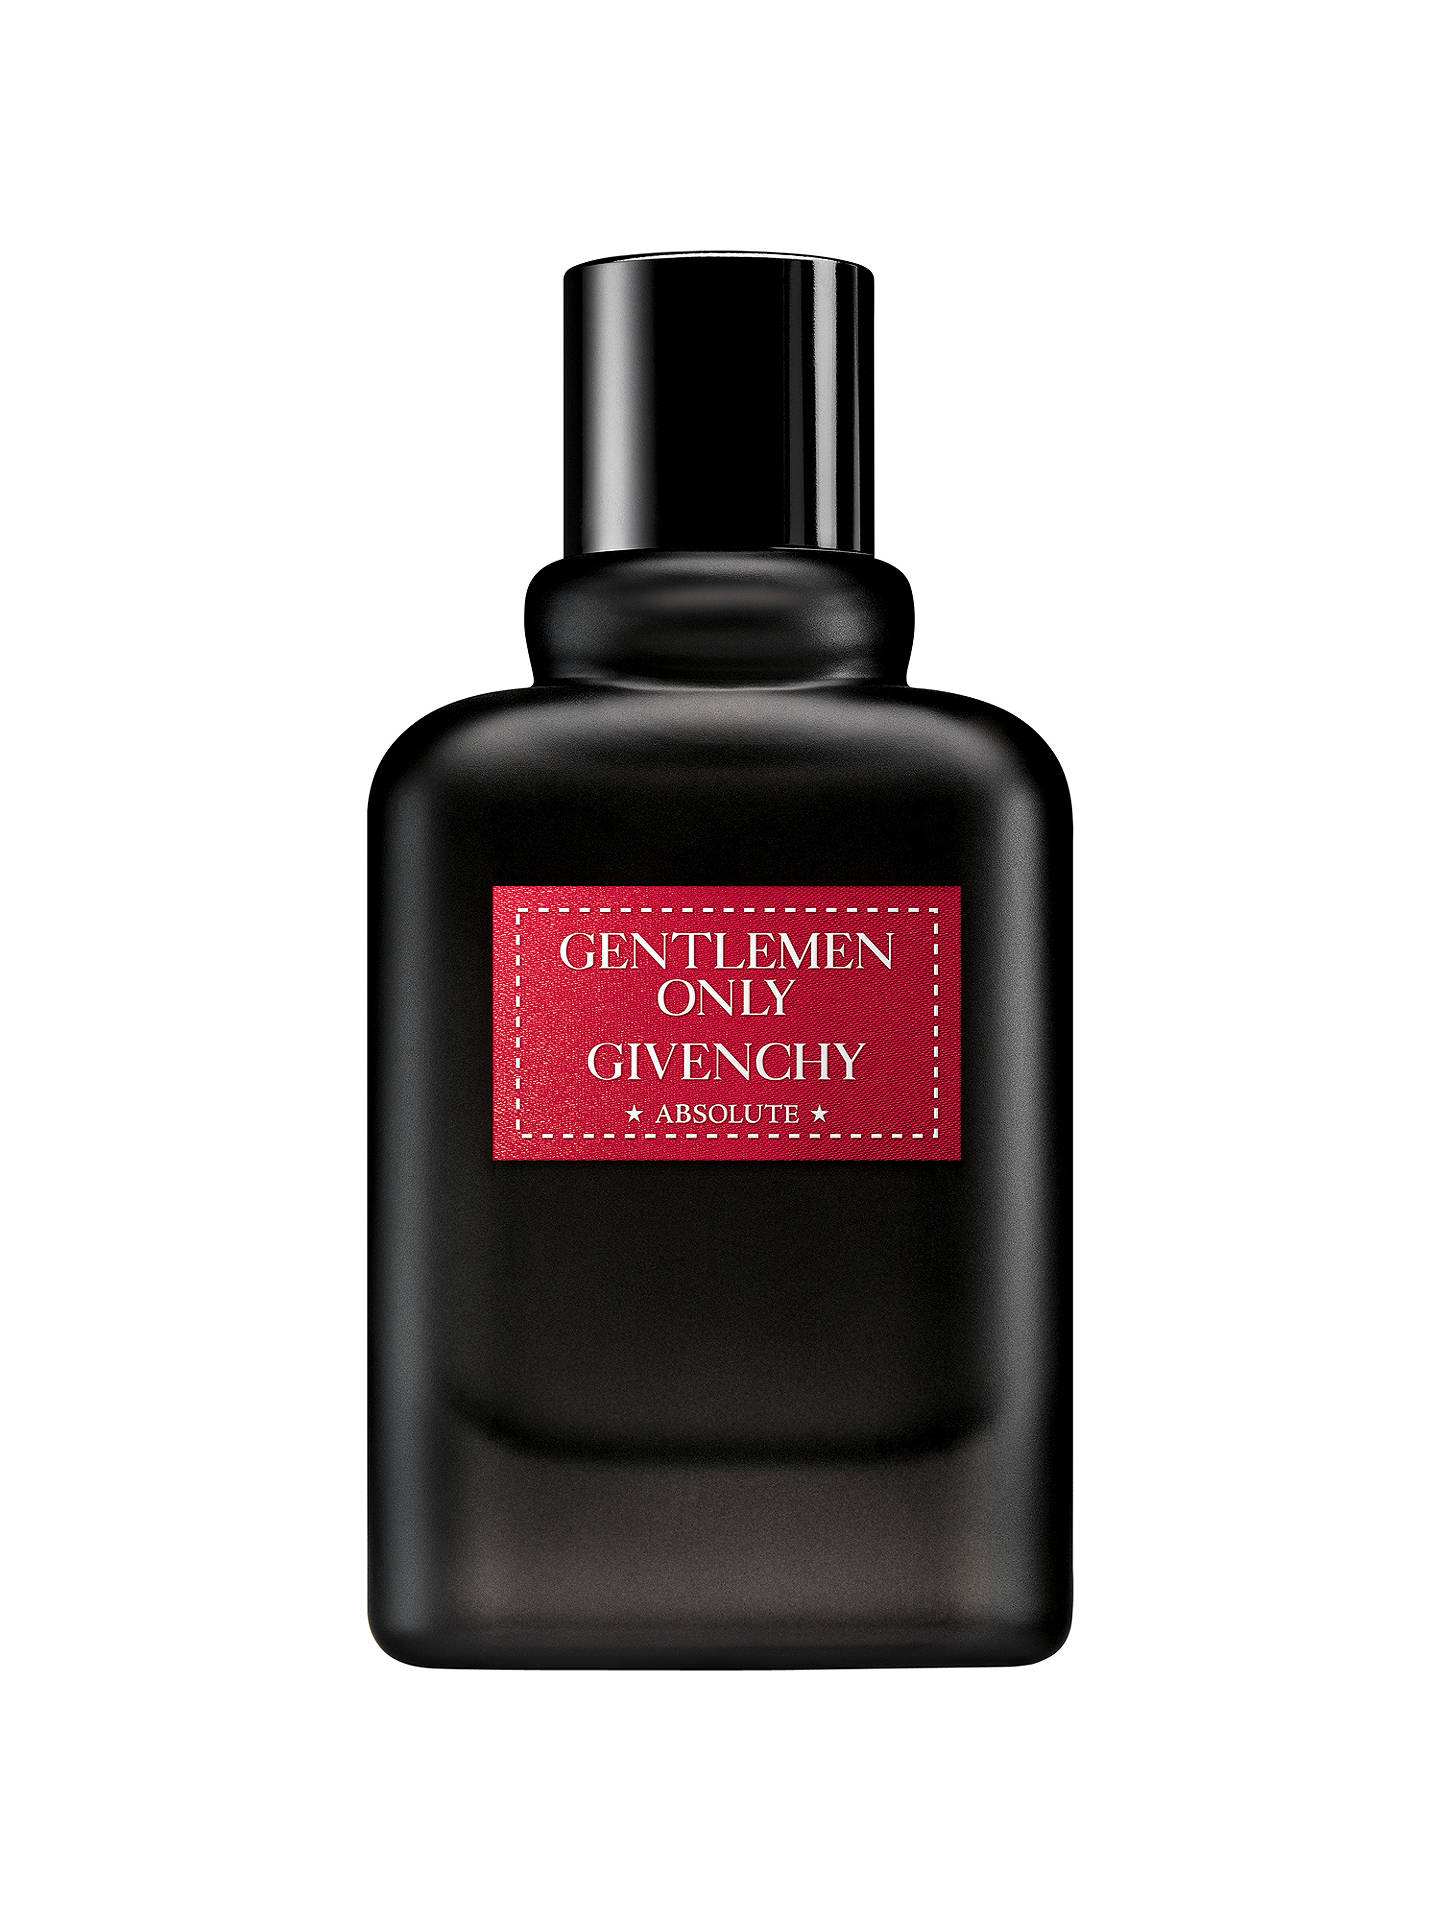 Givenchy Gentlemen Only Absolute Eau De Parfum At John Lewis Partners